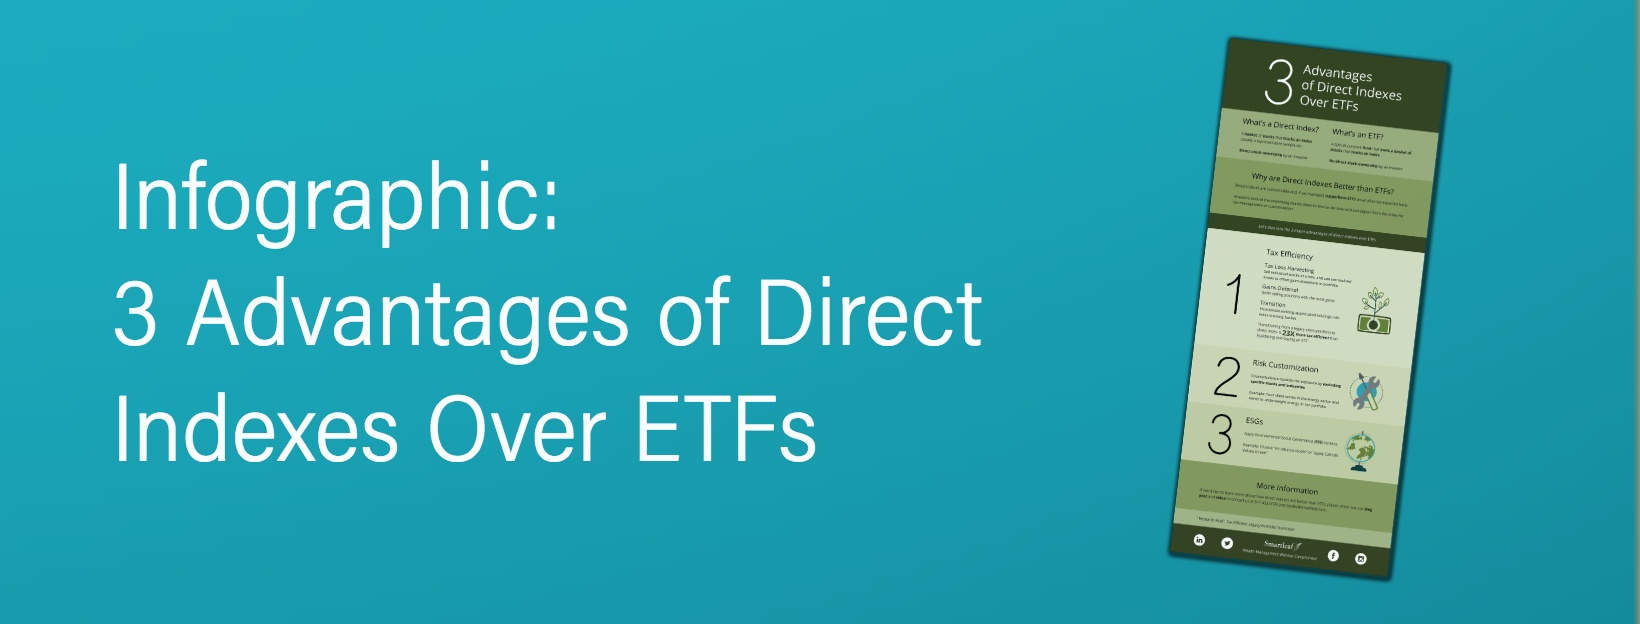 Infographic: Why Direct Indexes are Better Than ETFs